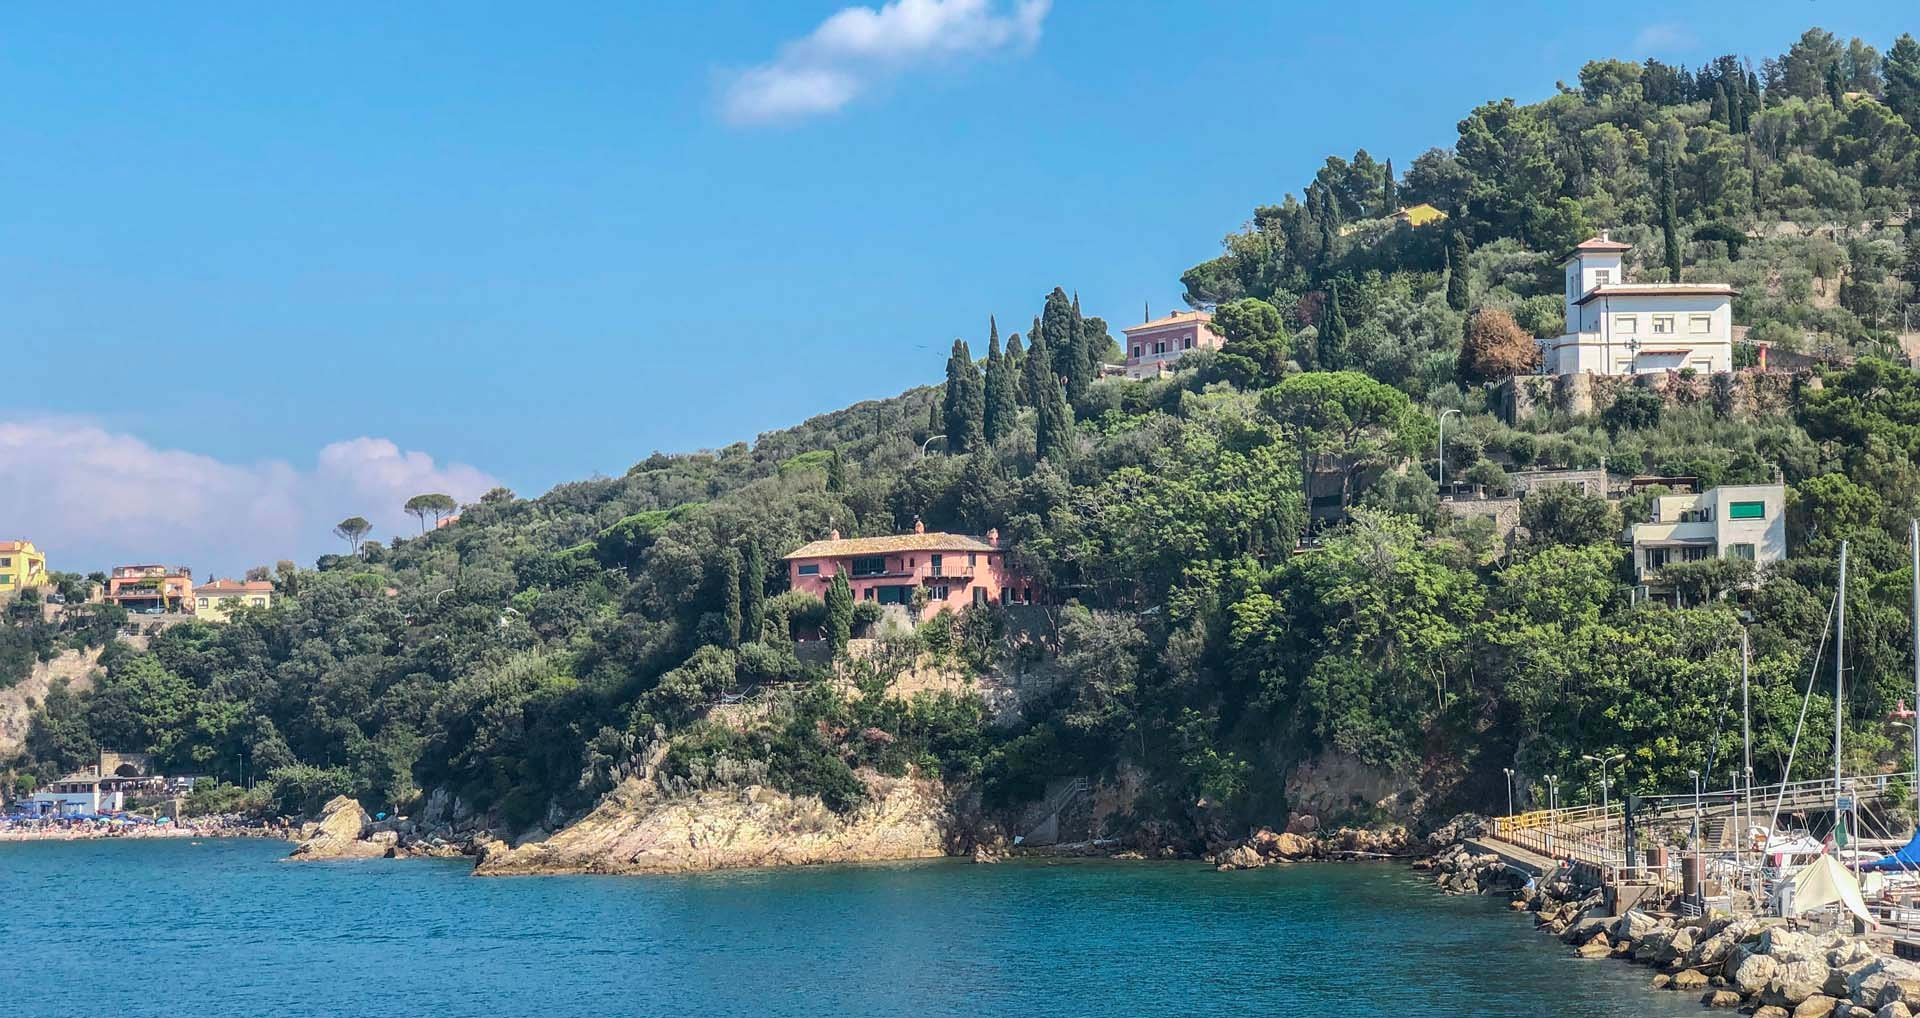 VILLA WITH SEA VIEW FOR SALE, ARGENTARIO, TUSCANY